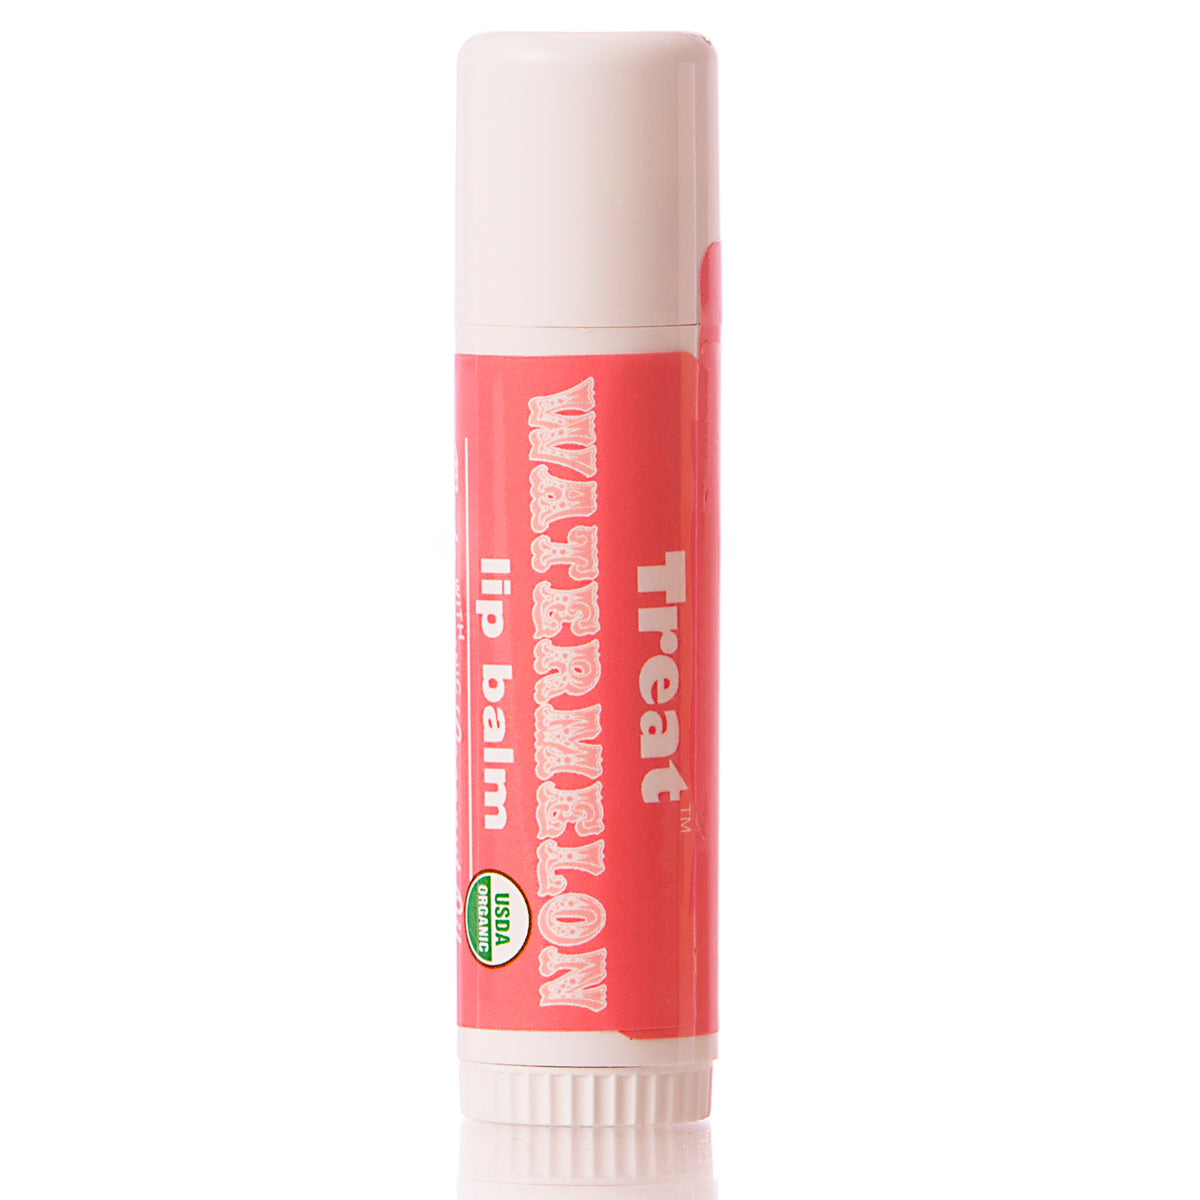 Treat Watermelon Jumbo Organic Lip Balm